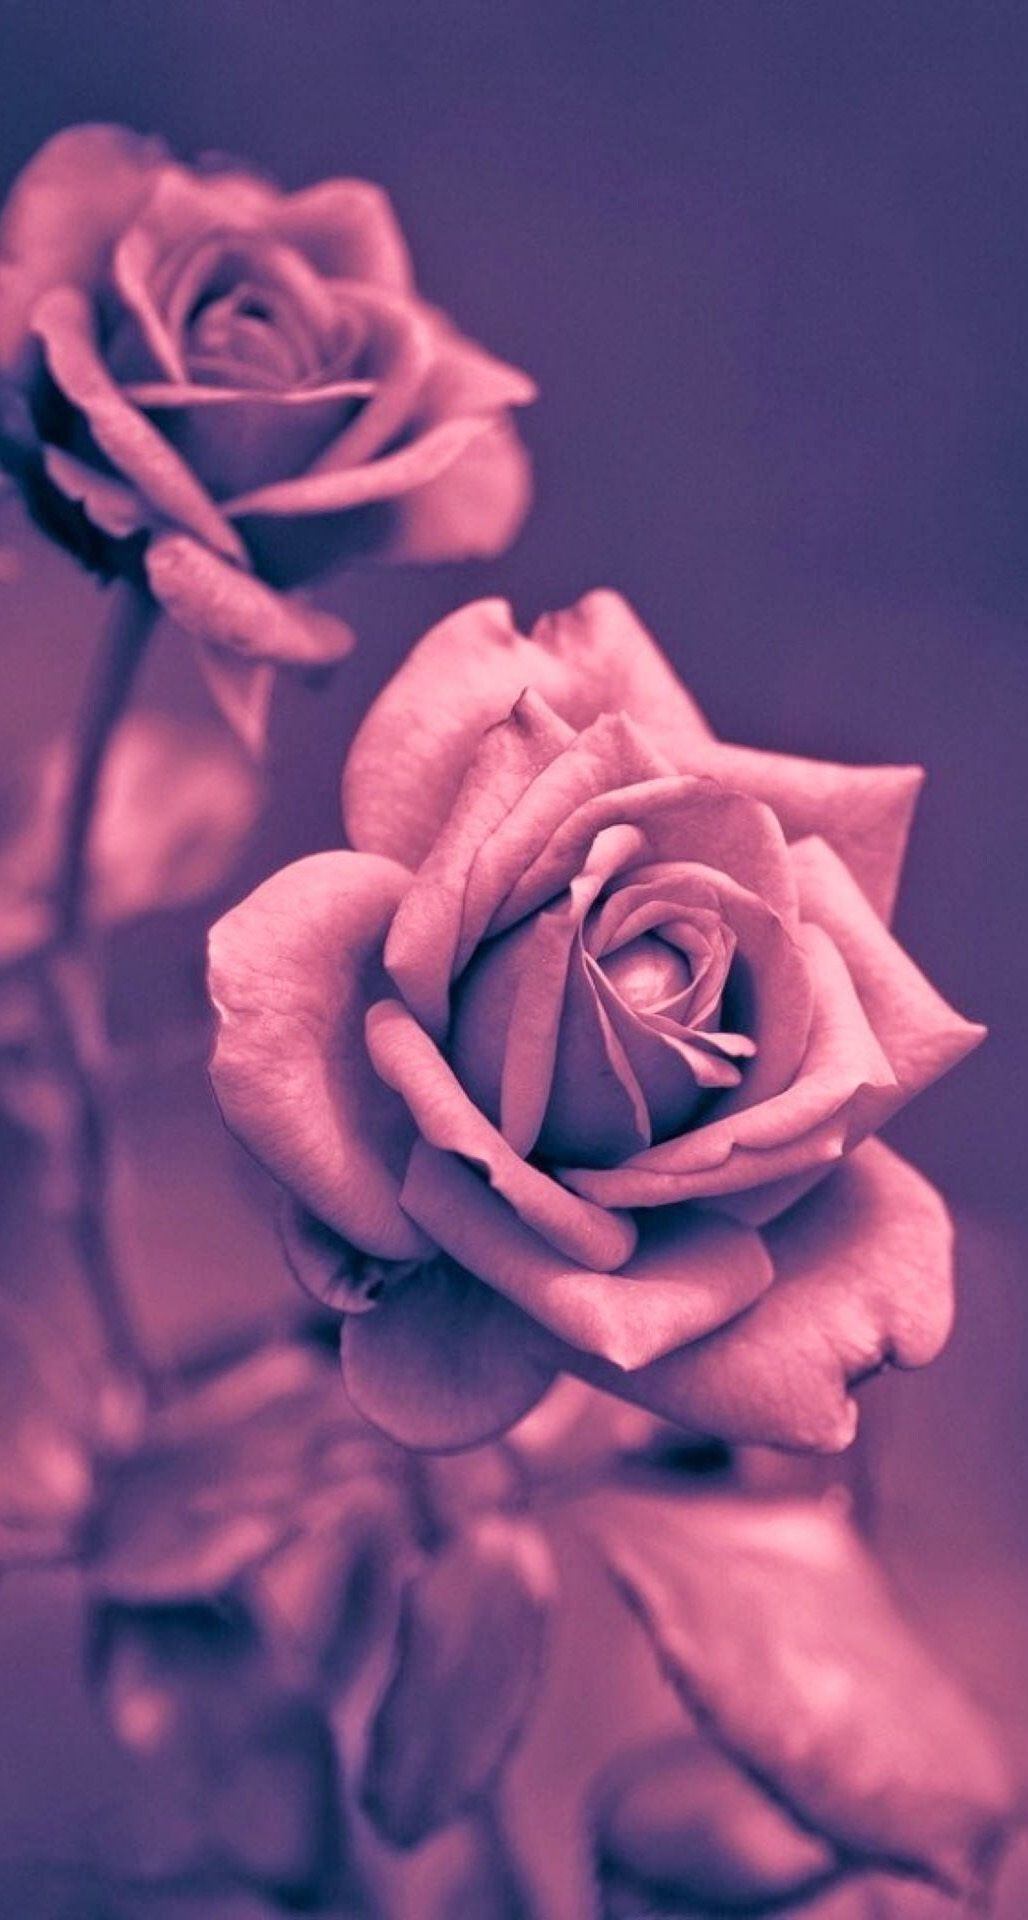 Beautiful Pink Rose Closeup Iphone Plus Hd Wallpaper Hd Wallpapers